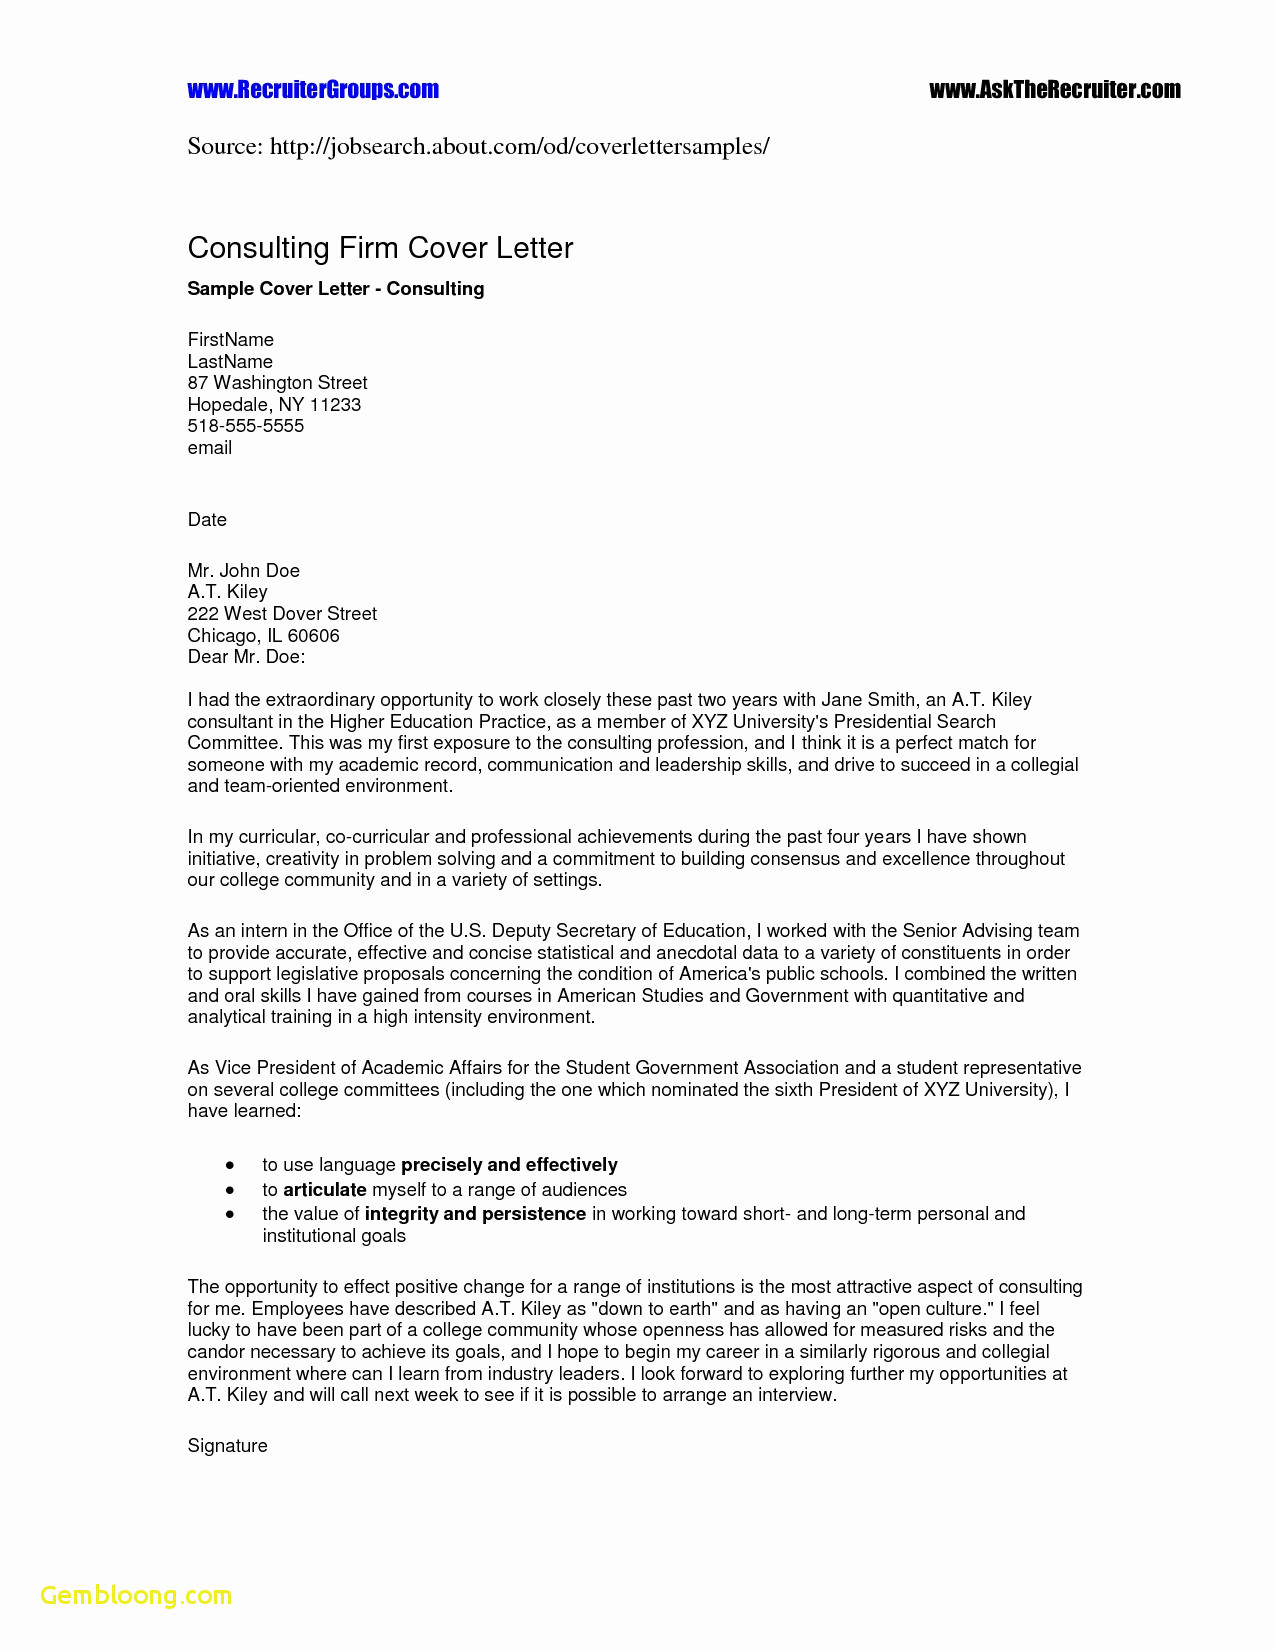 Cover Letter Template Word Free Download - Teaching Resume Examples Free Download Free Job Resume Template